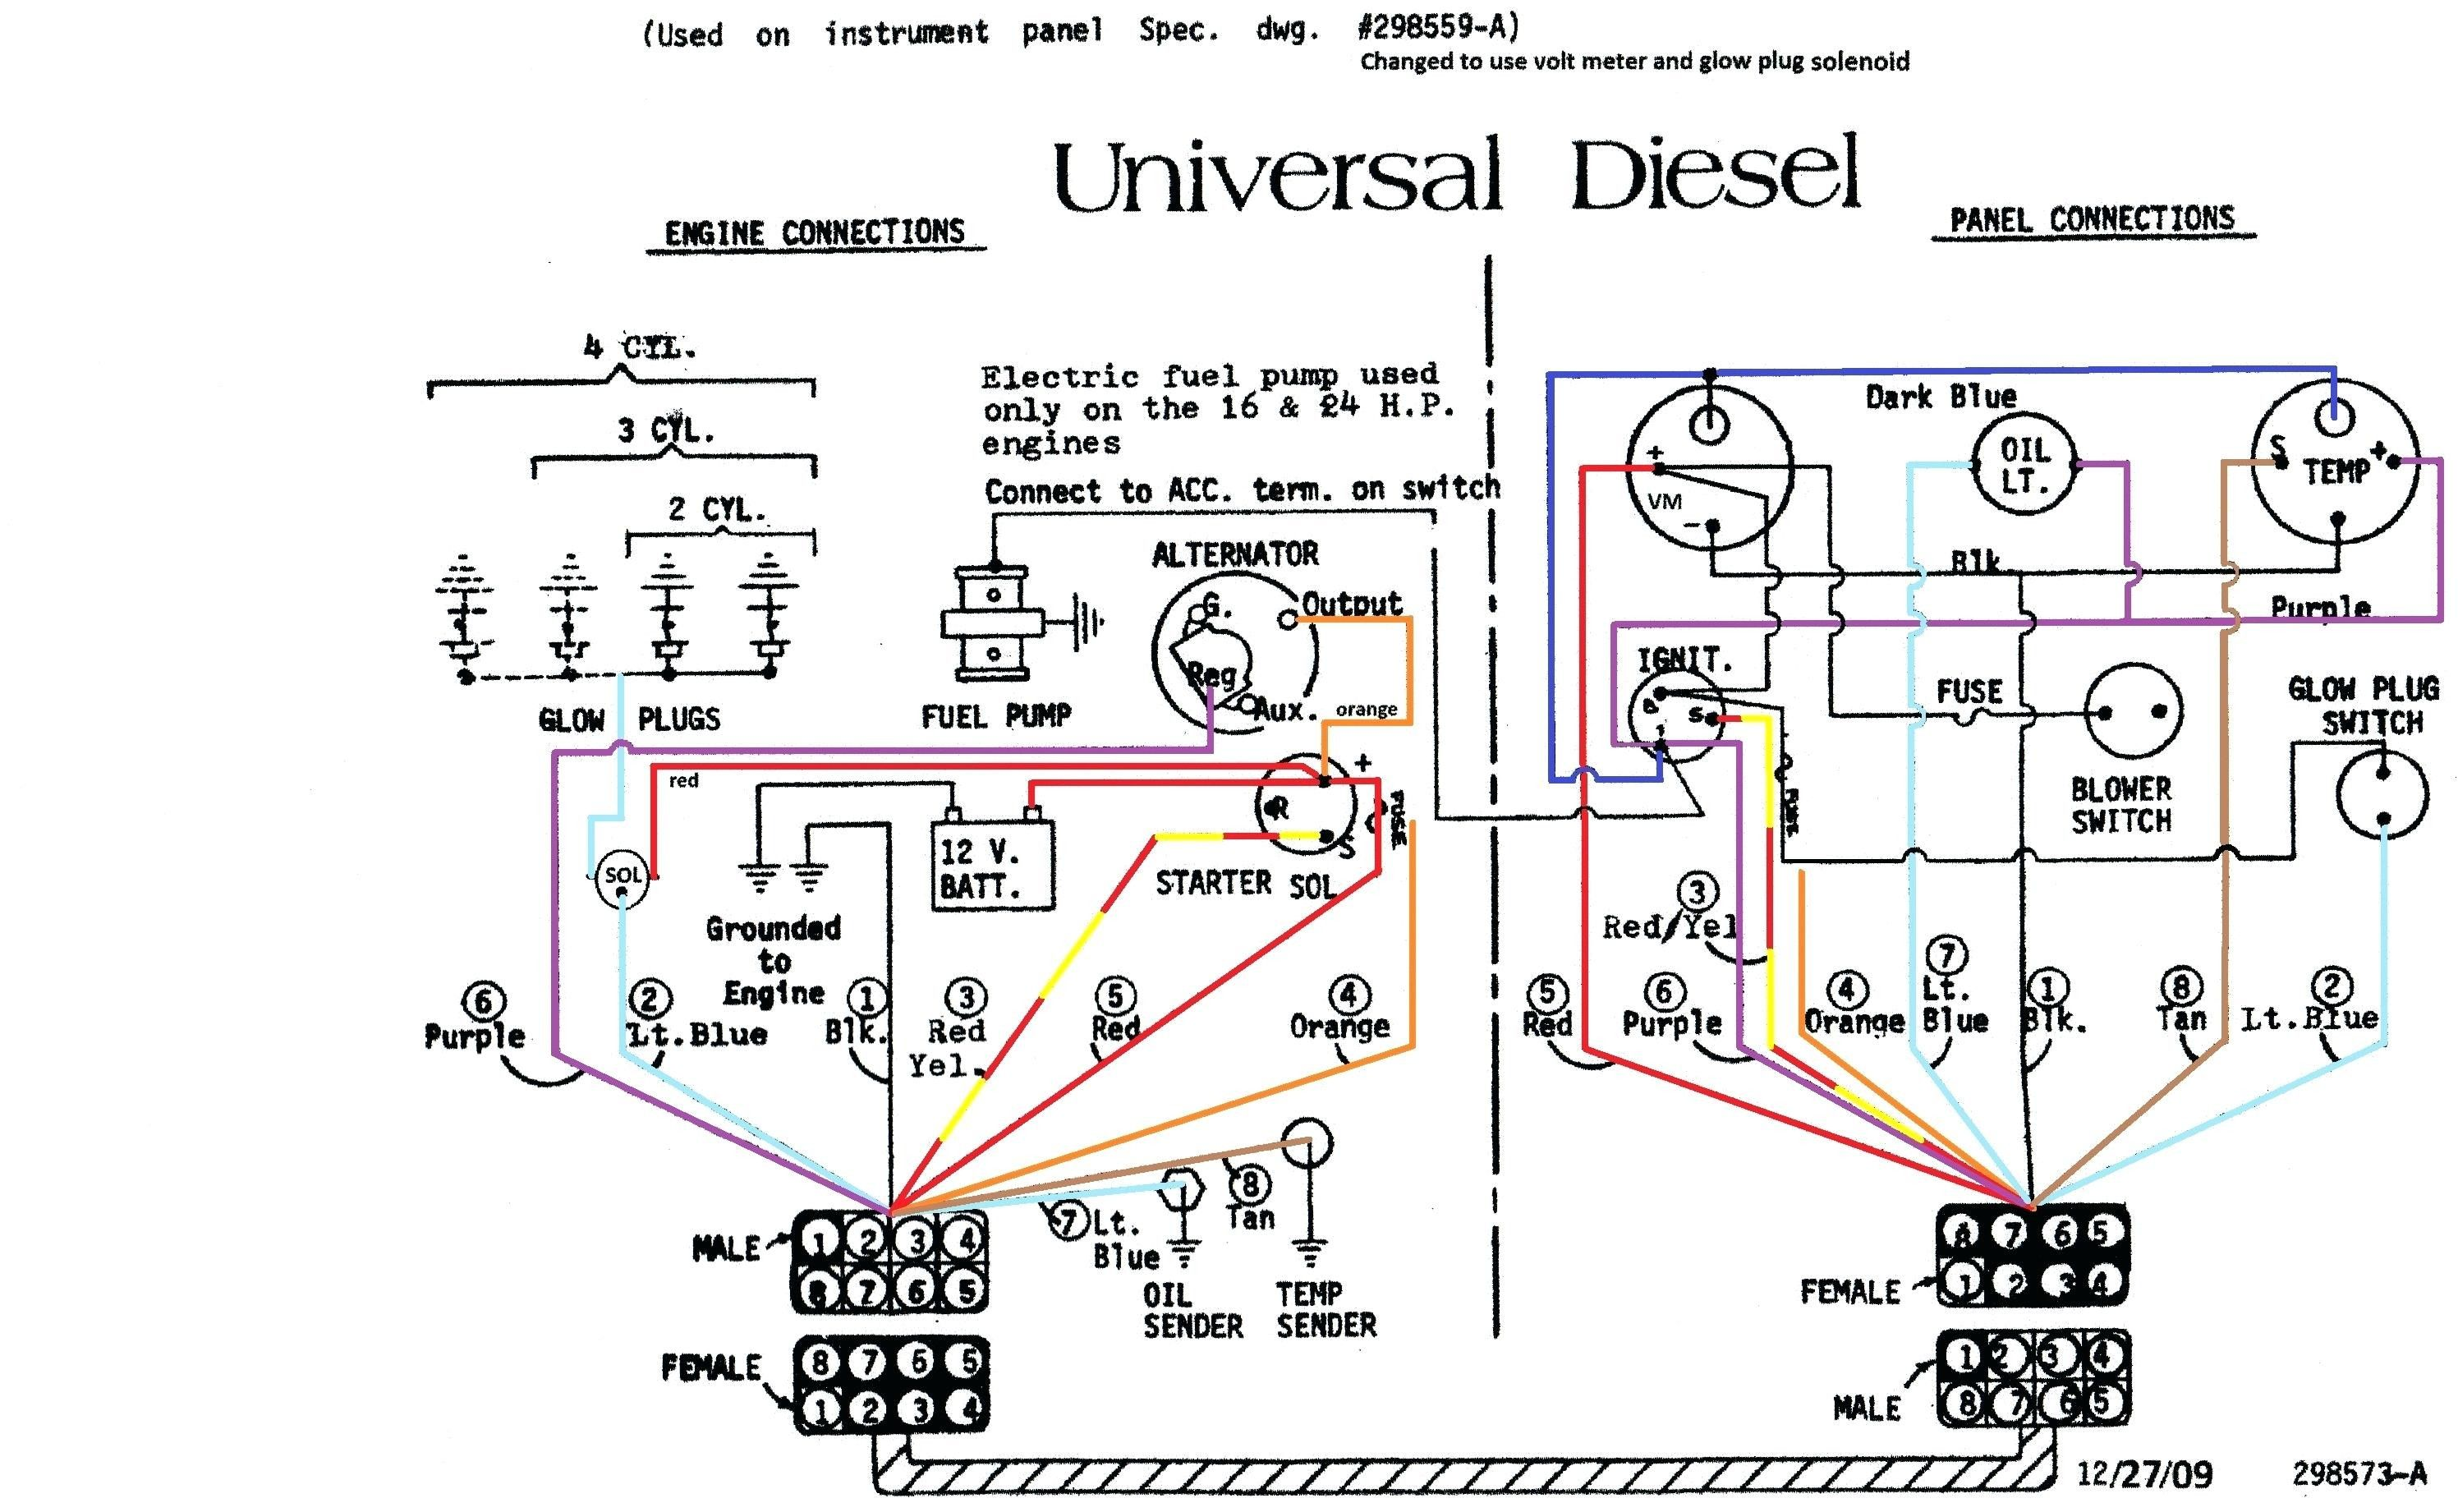 New Wiring Diagram Program Diagram Wiringdiagram Diagramming Diagramm Visuals Visualisation Graphical Alternator Powerstroke Diesel Engine